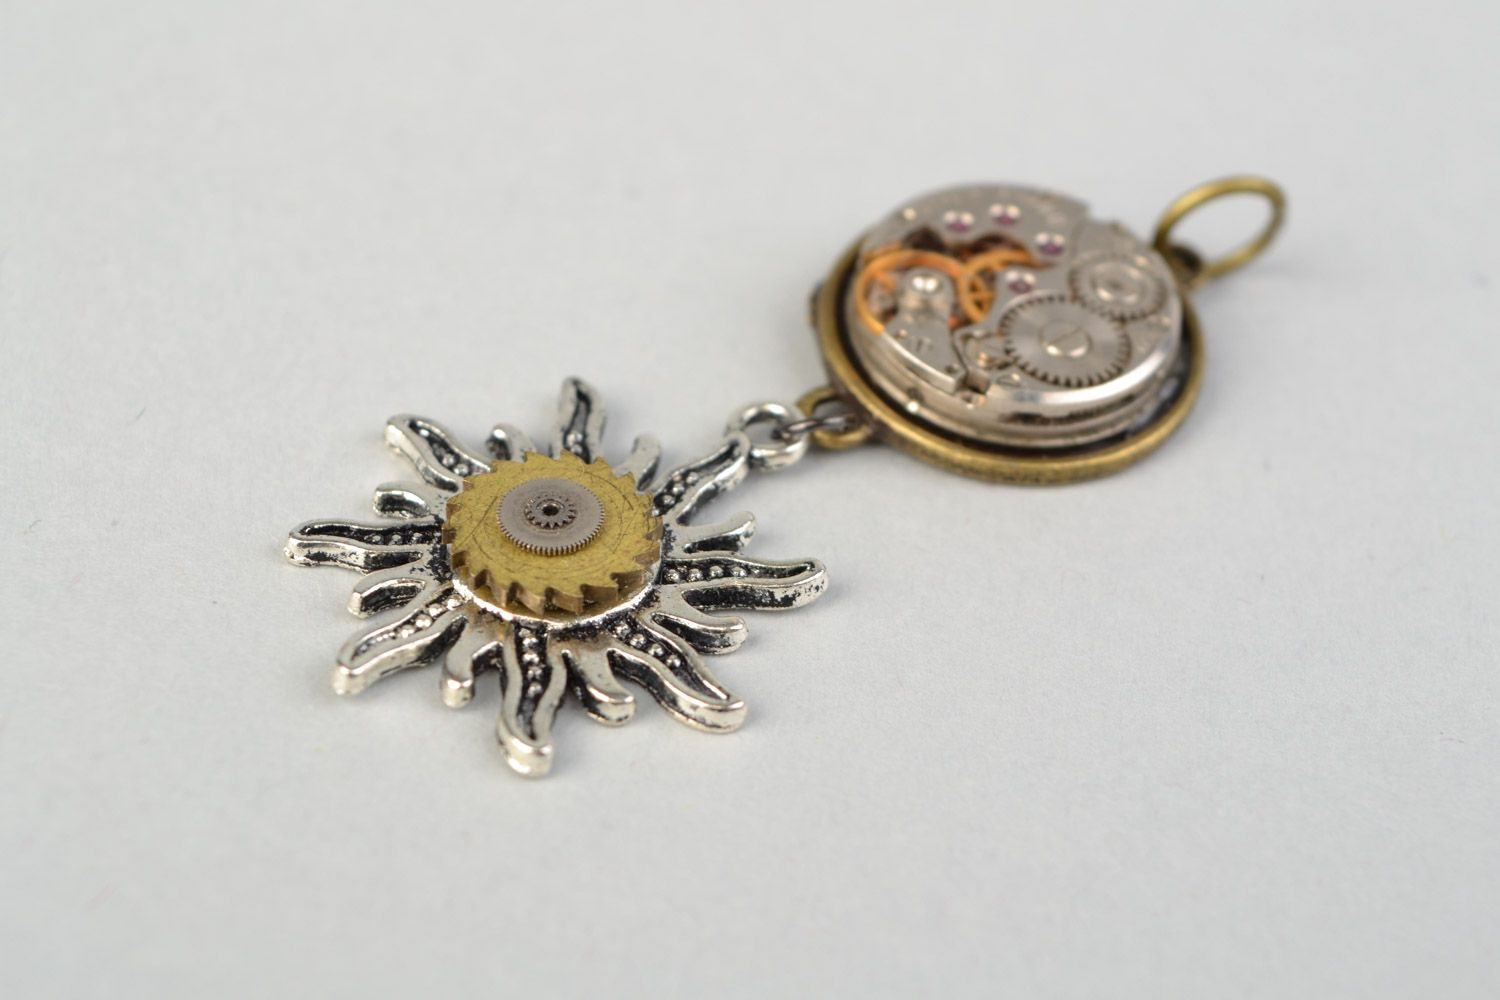 metal jewelry Handmade metal pendant with clock mechanism in steampunk style Sun and Time - MADEheart.com